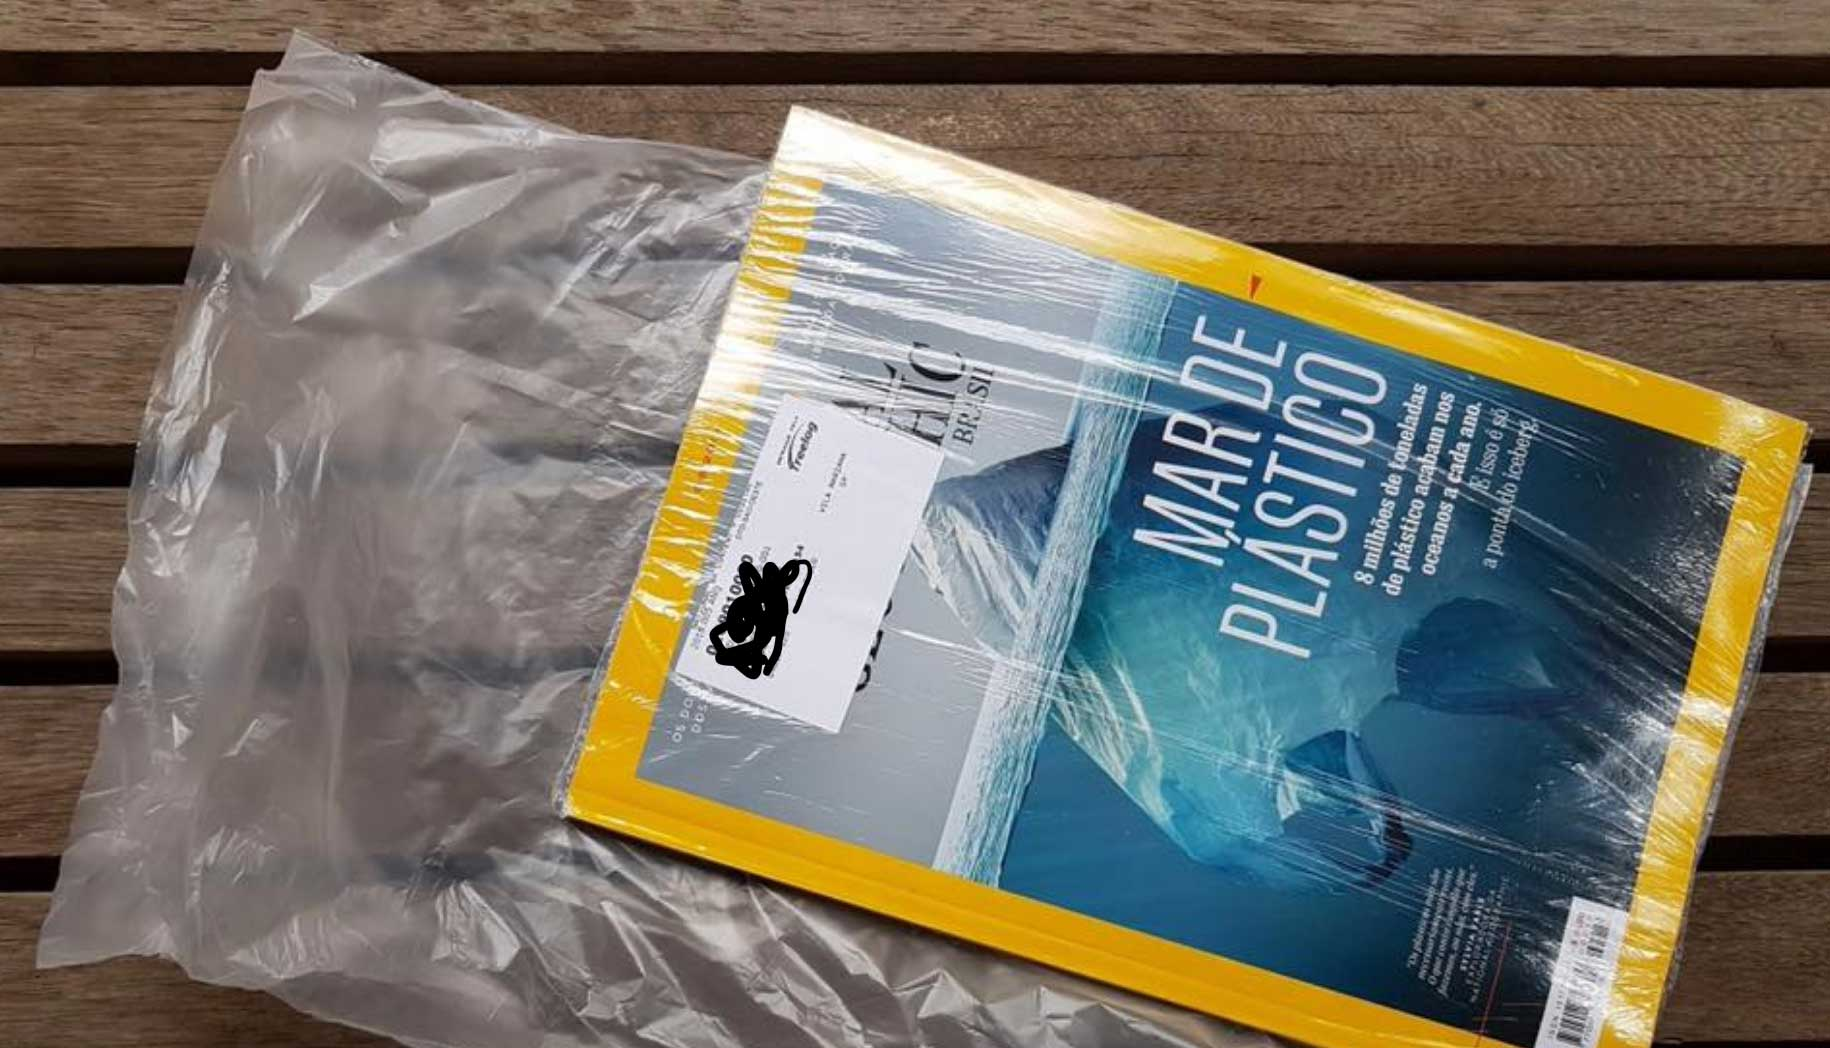 Crappy design national geographic plastic waste environment global warming